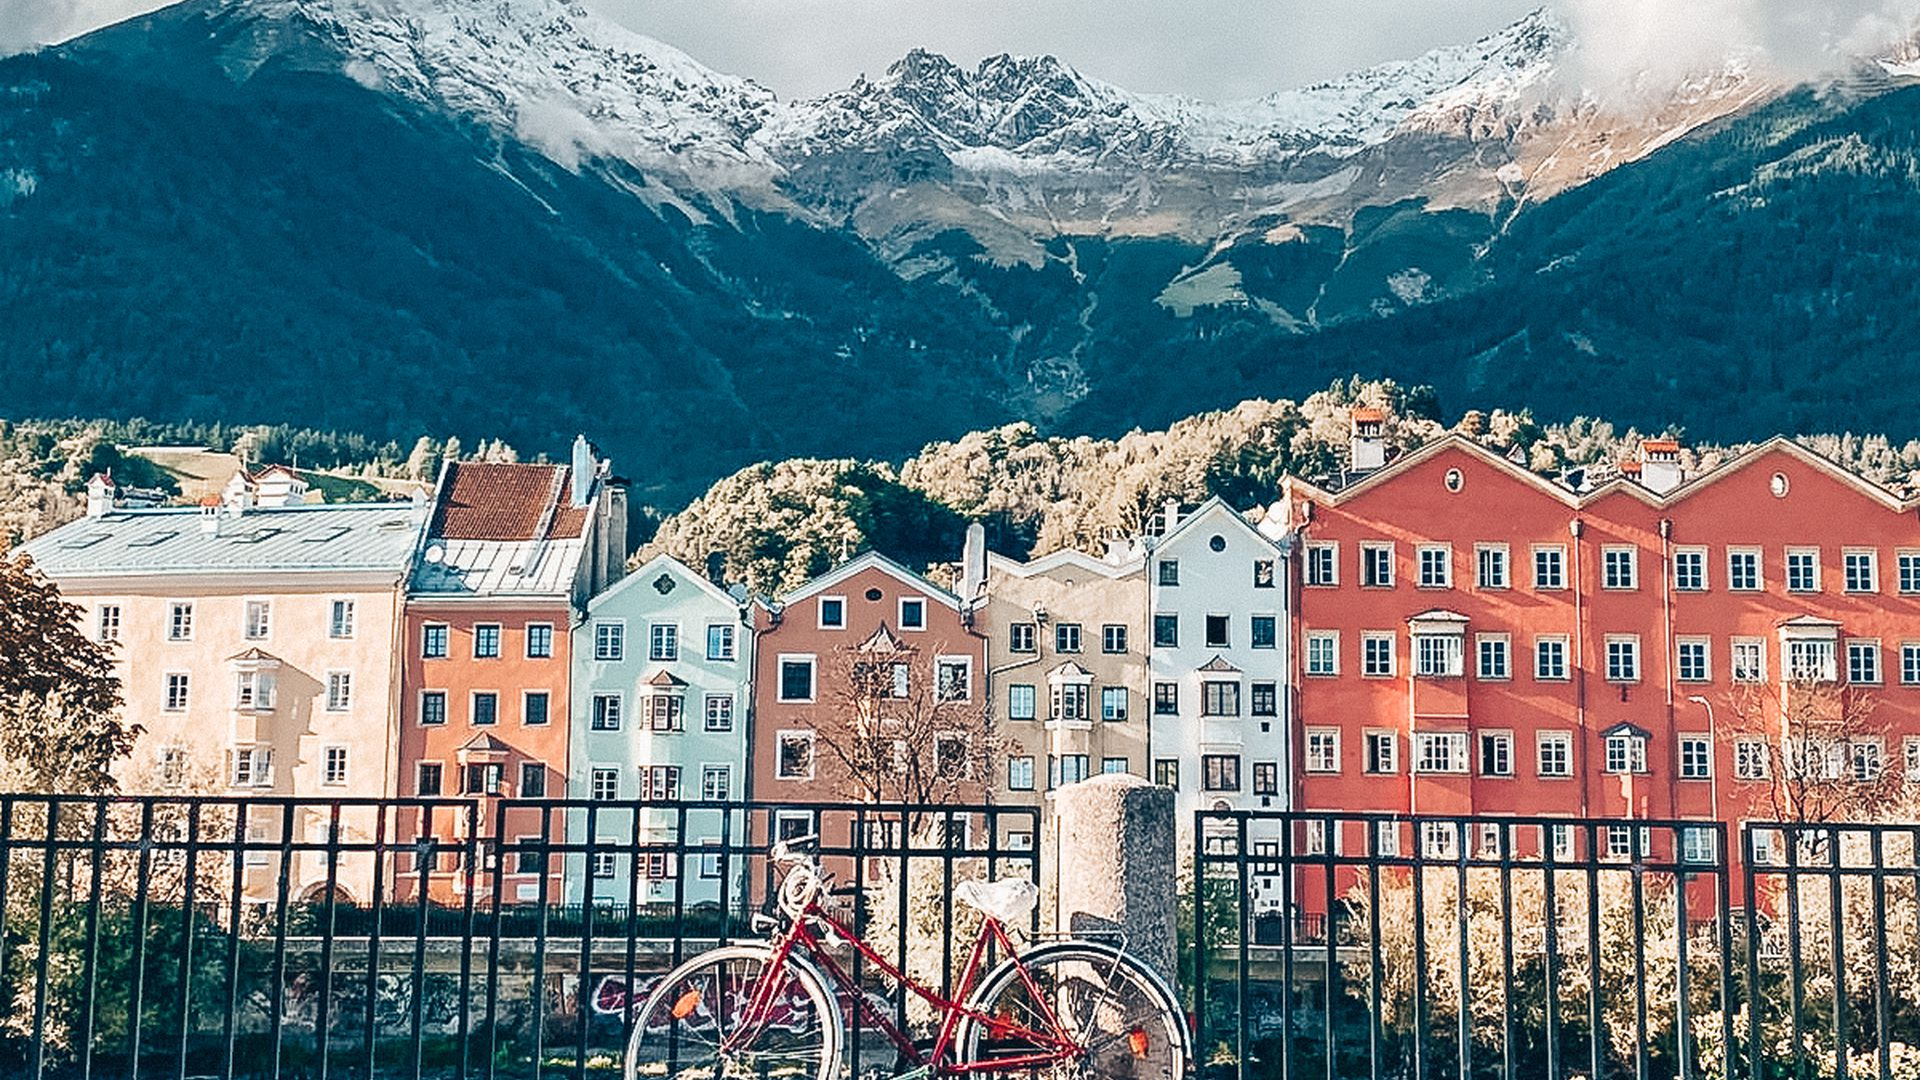 Historical Innsbruck City: Exciting Stories, Photo Spots & Delicious Desserts